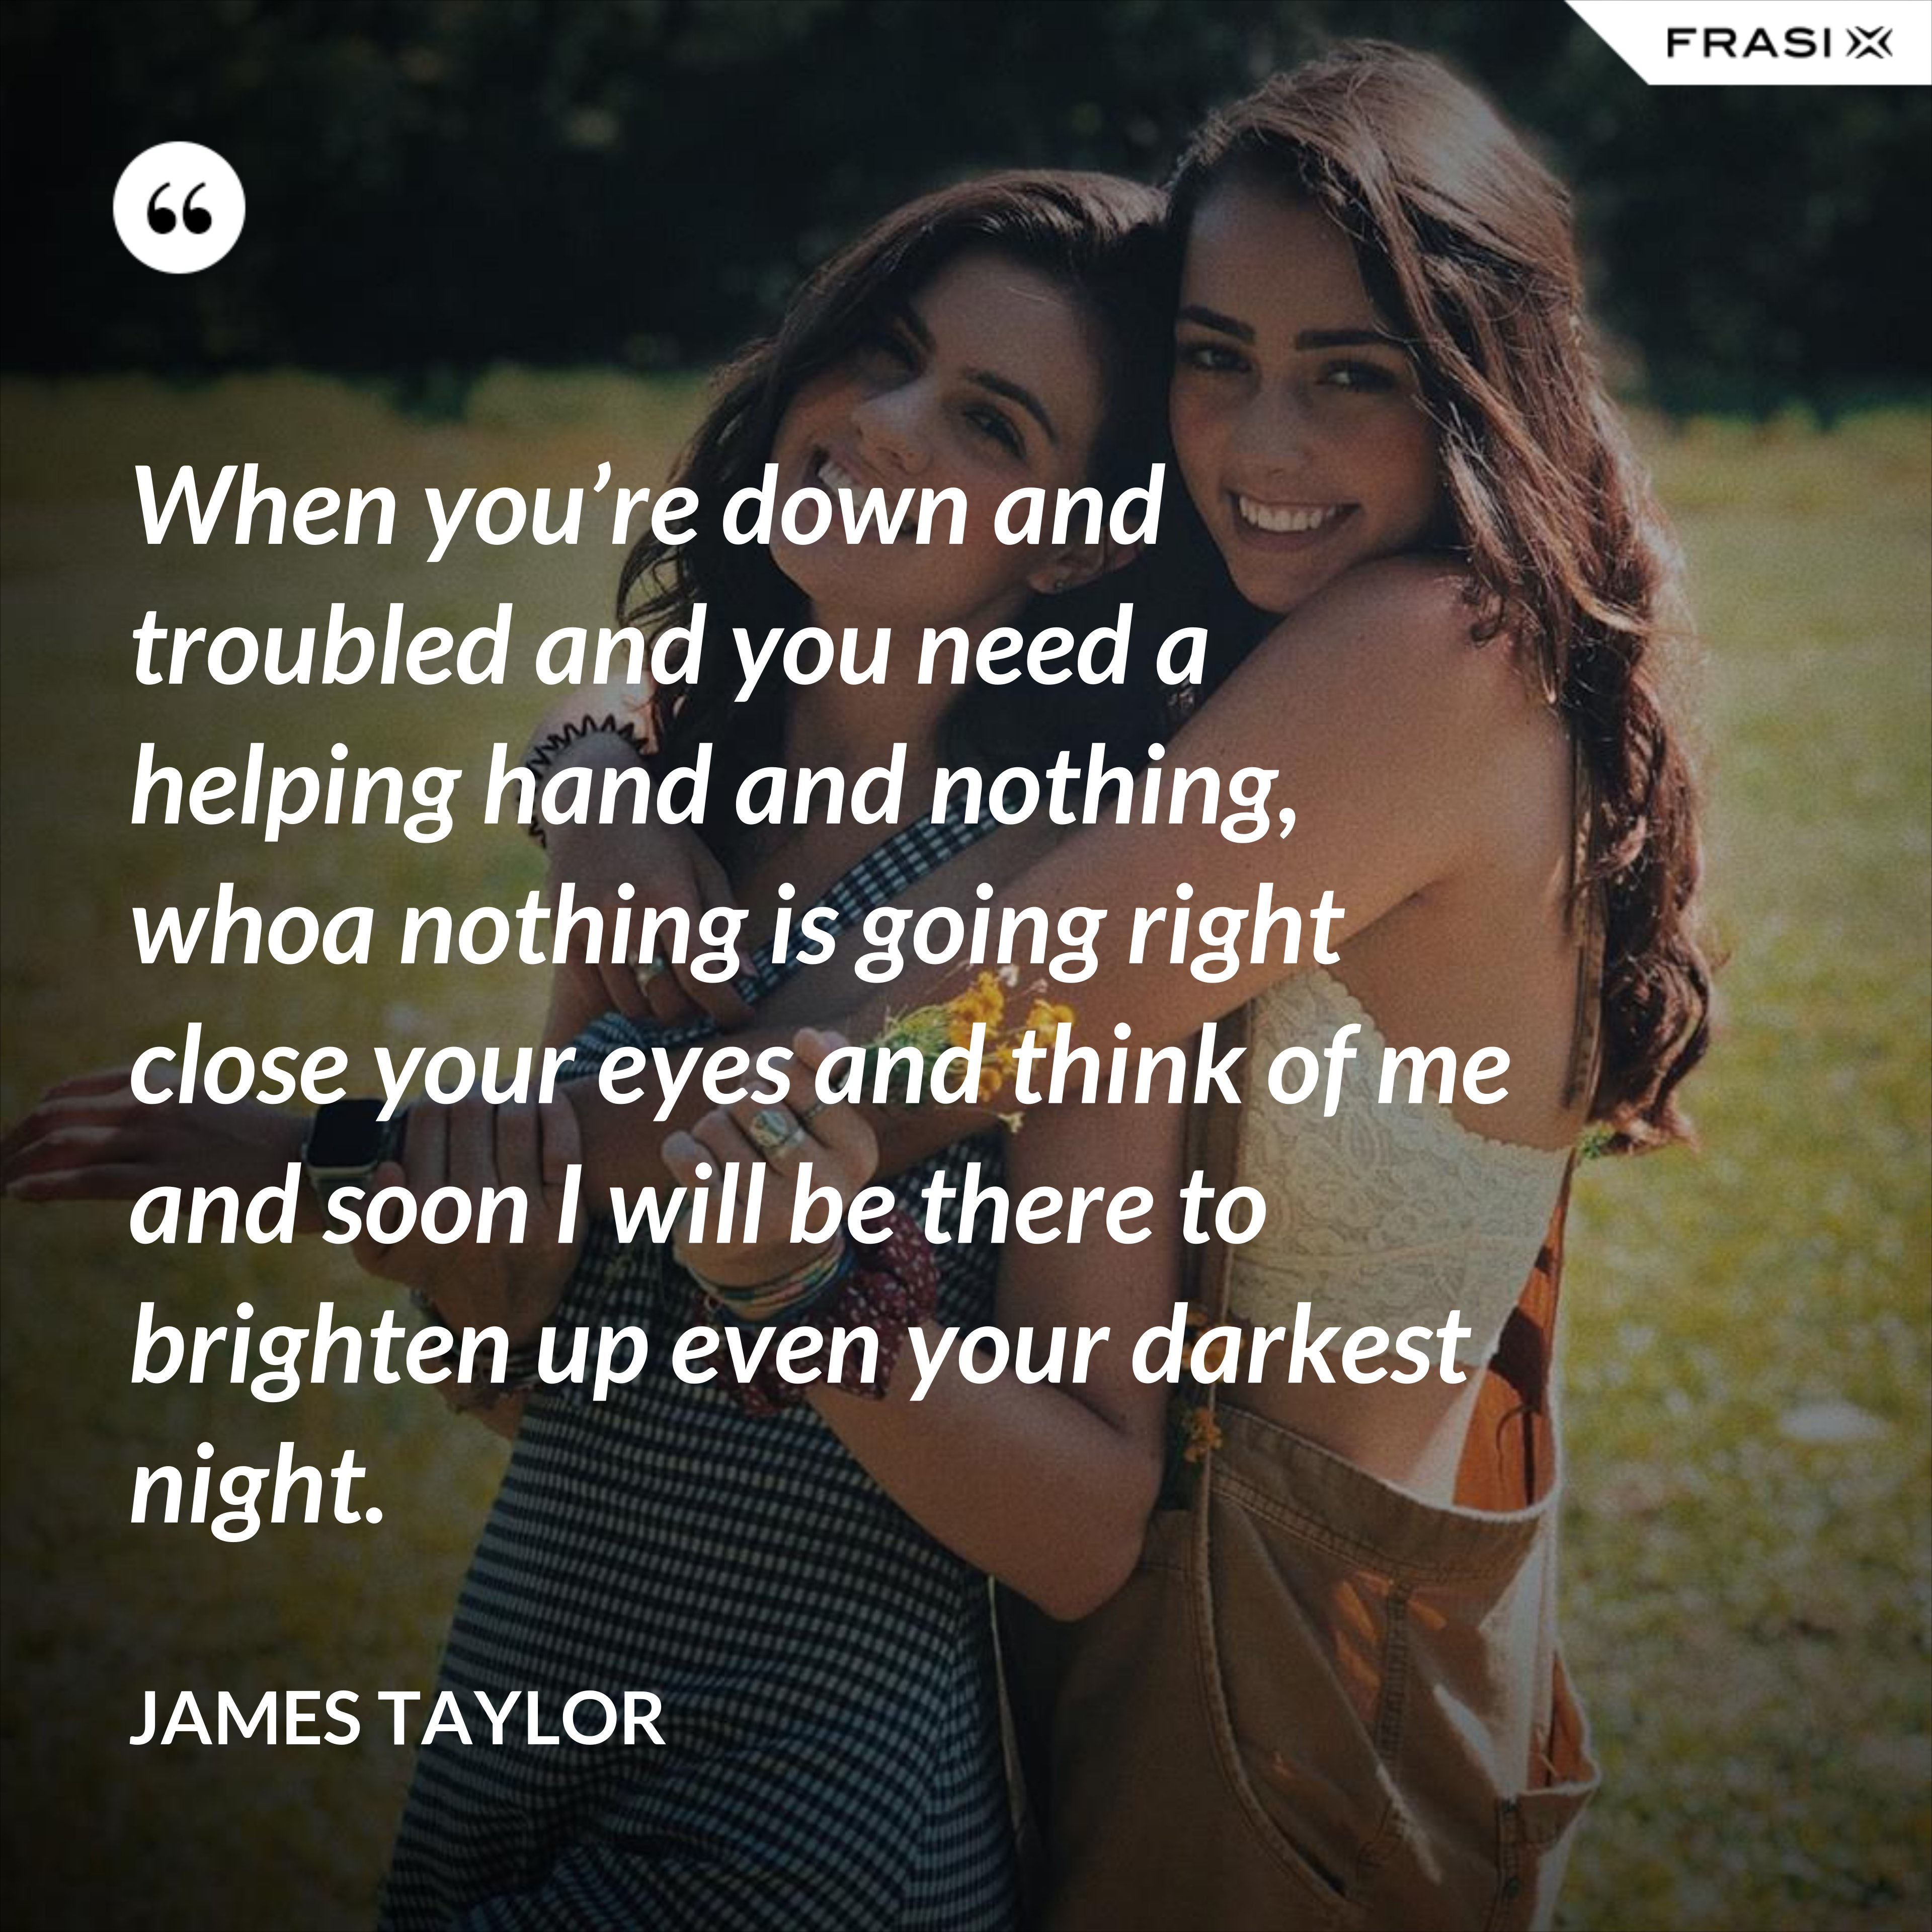 When you're down and troubled and you need a helping hand and nothing, whoa nothing is going right close your eyes and think of me and soon I will be there to brighten up even your darkest night. - James Taylor